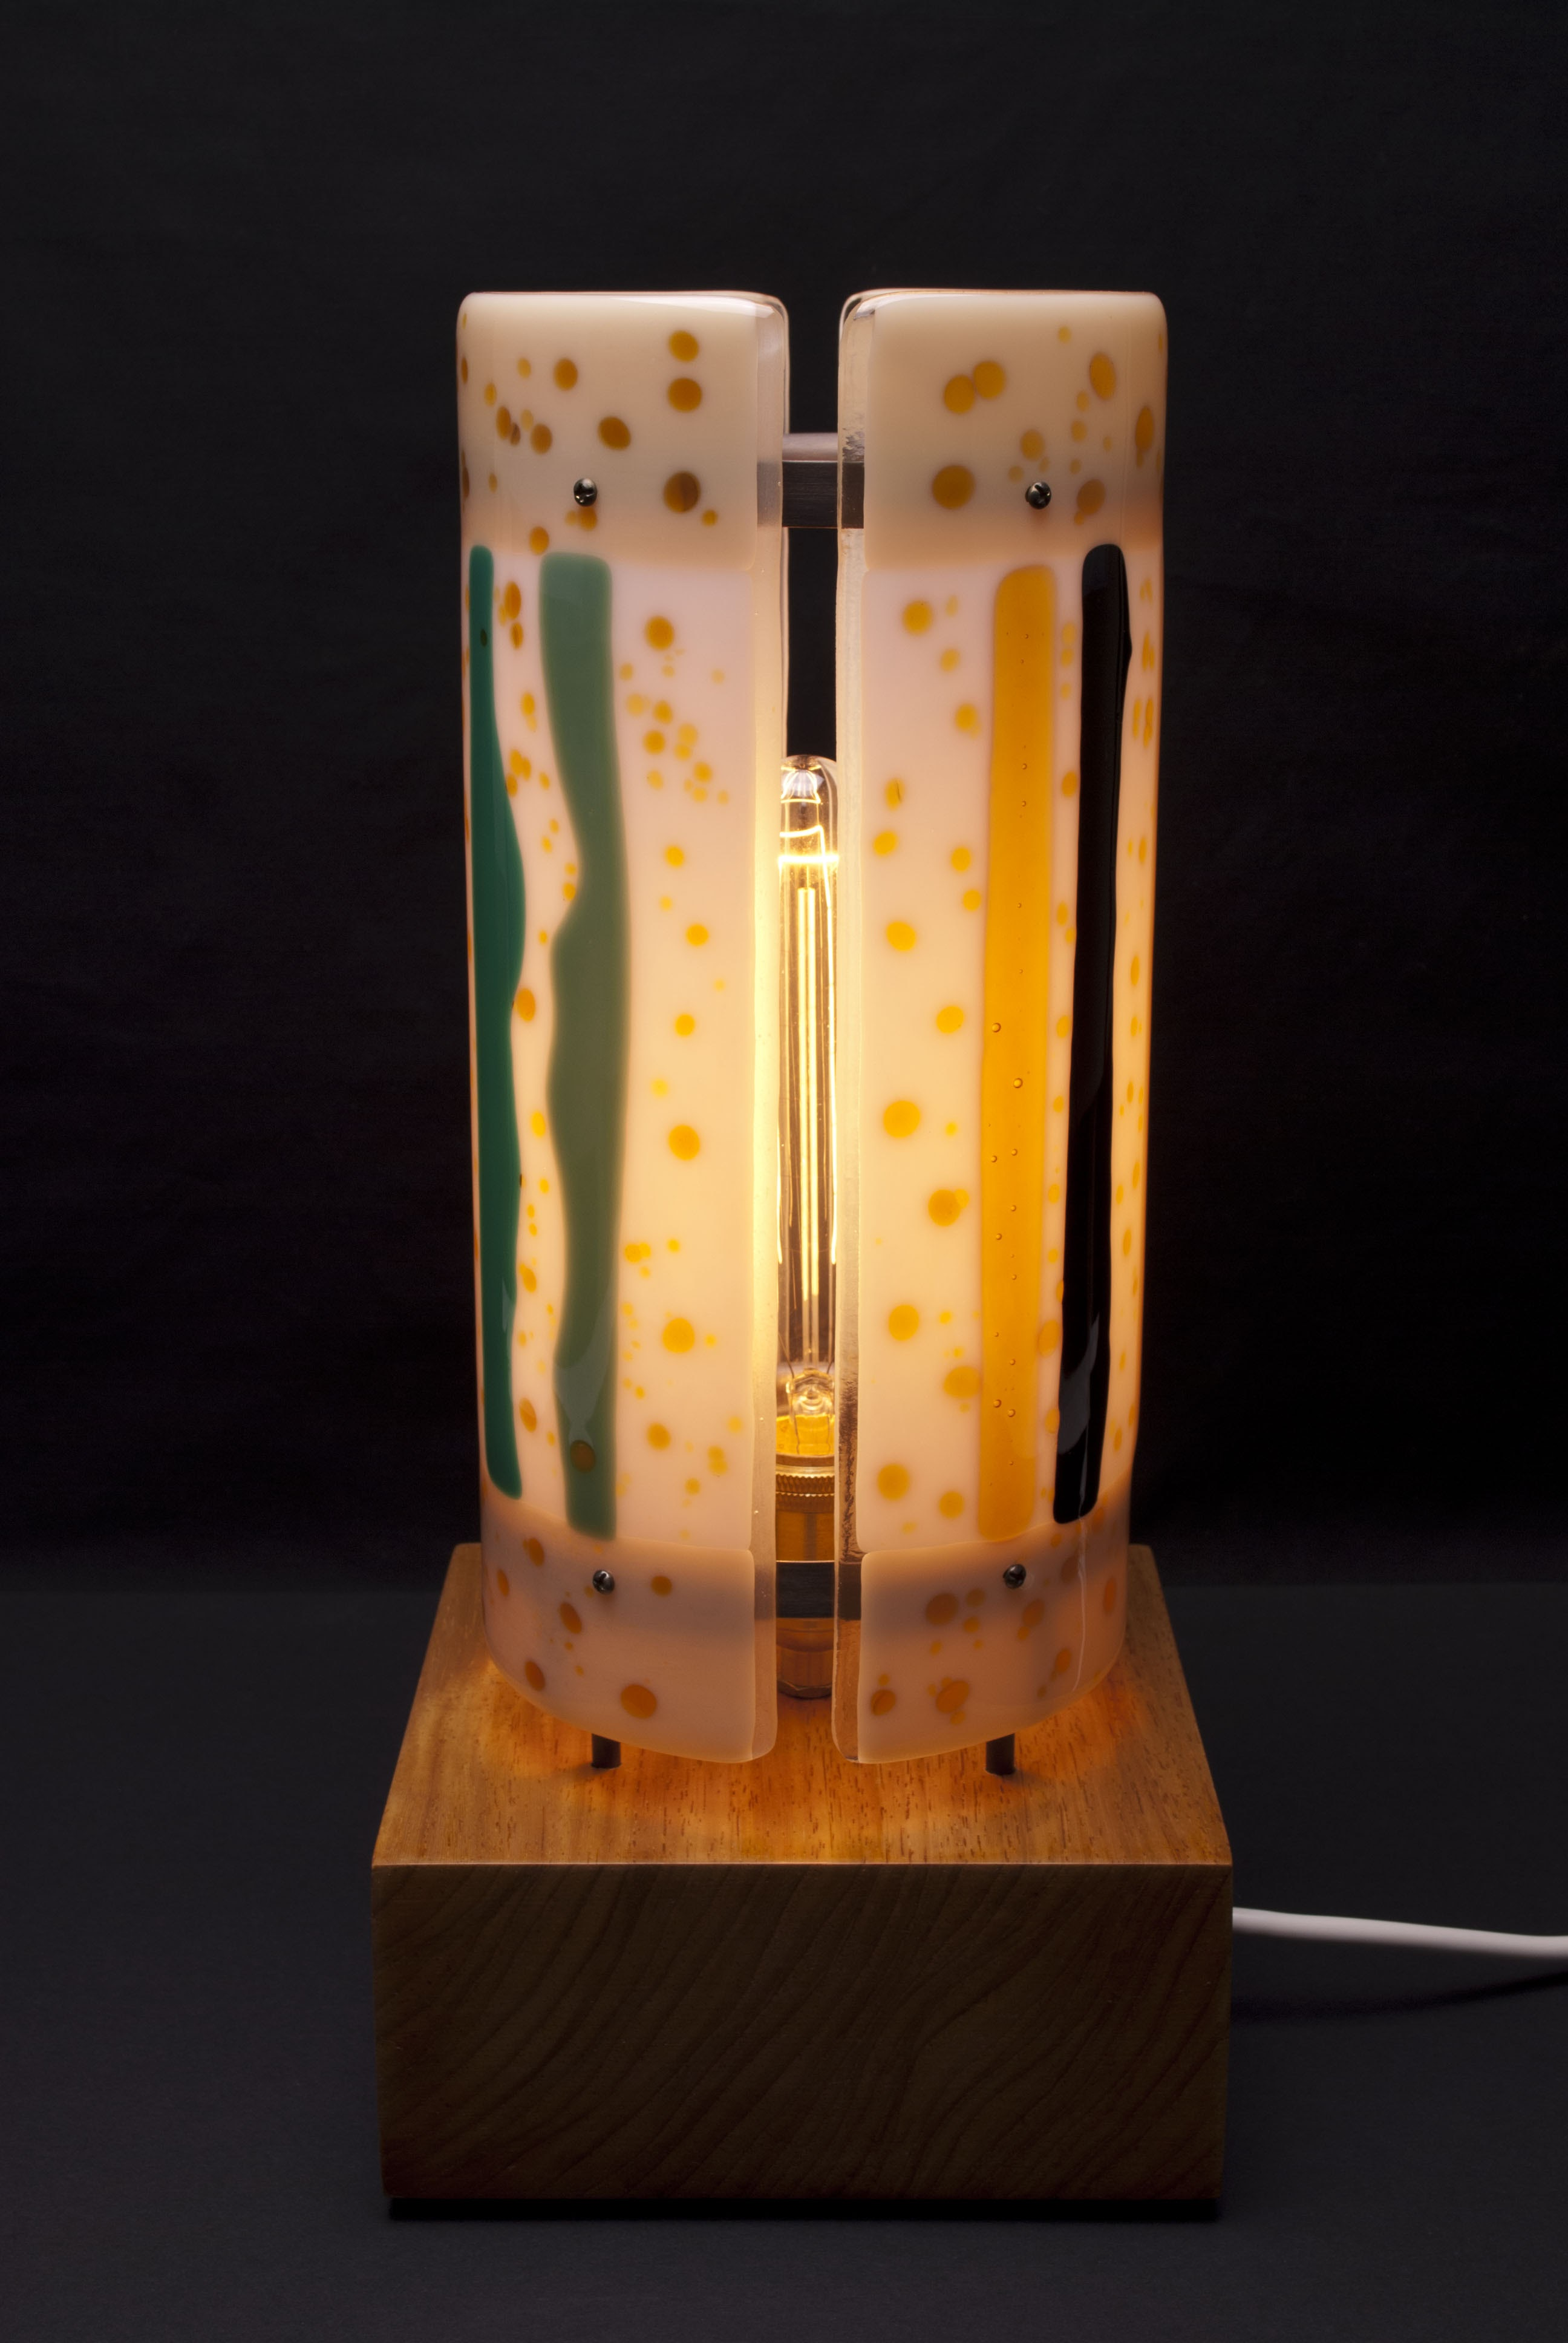 Upright table lamp